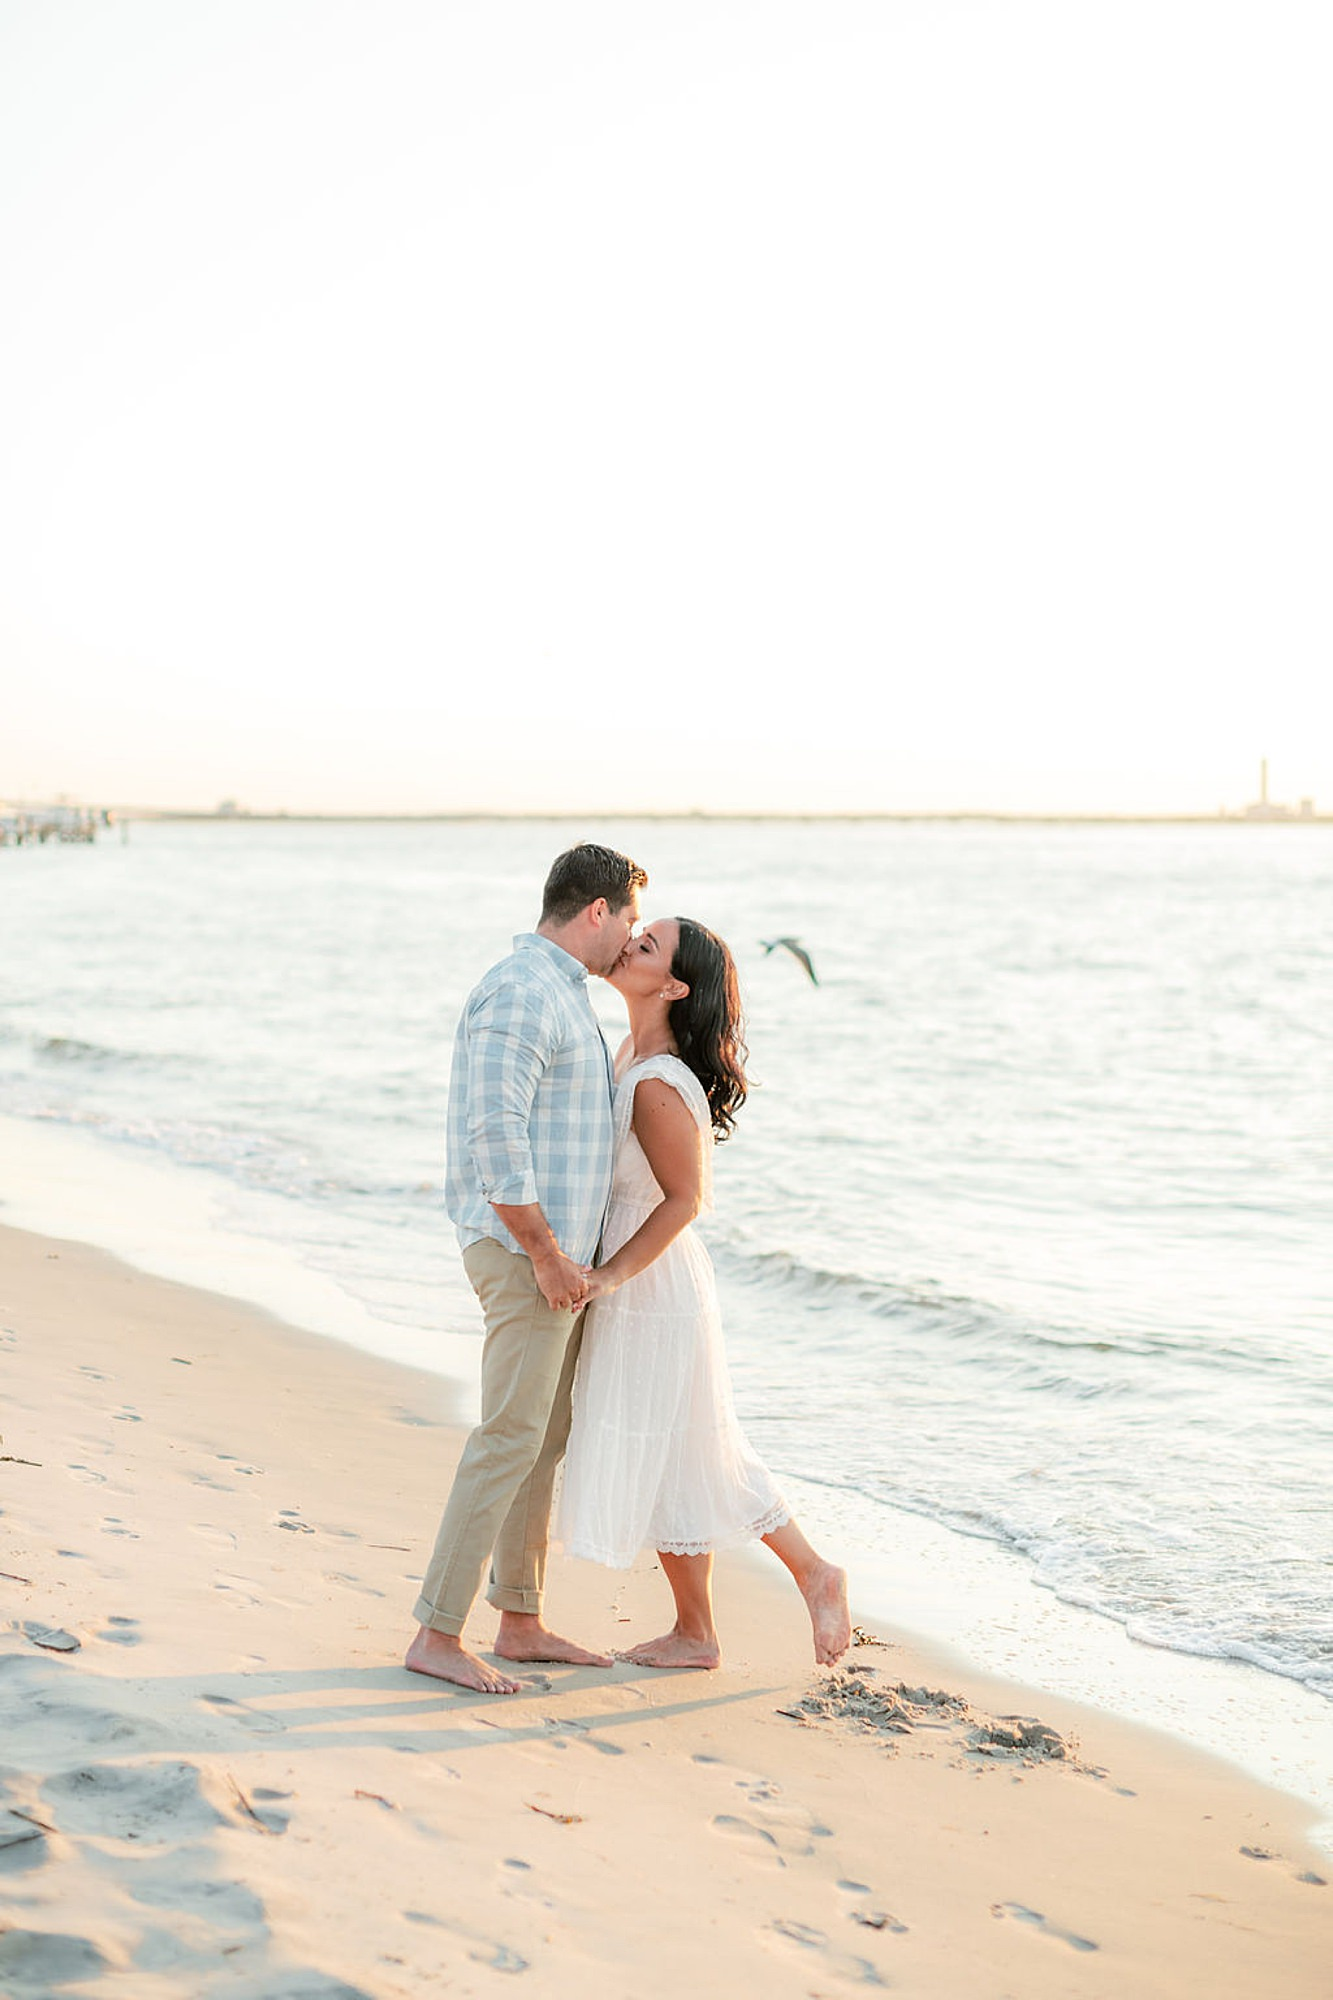 Airy and Bright Engagement Photography in Ocean City NJ by Magdalena Studios 0038